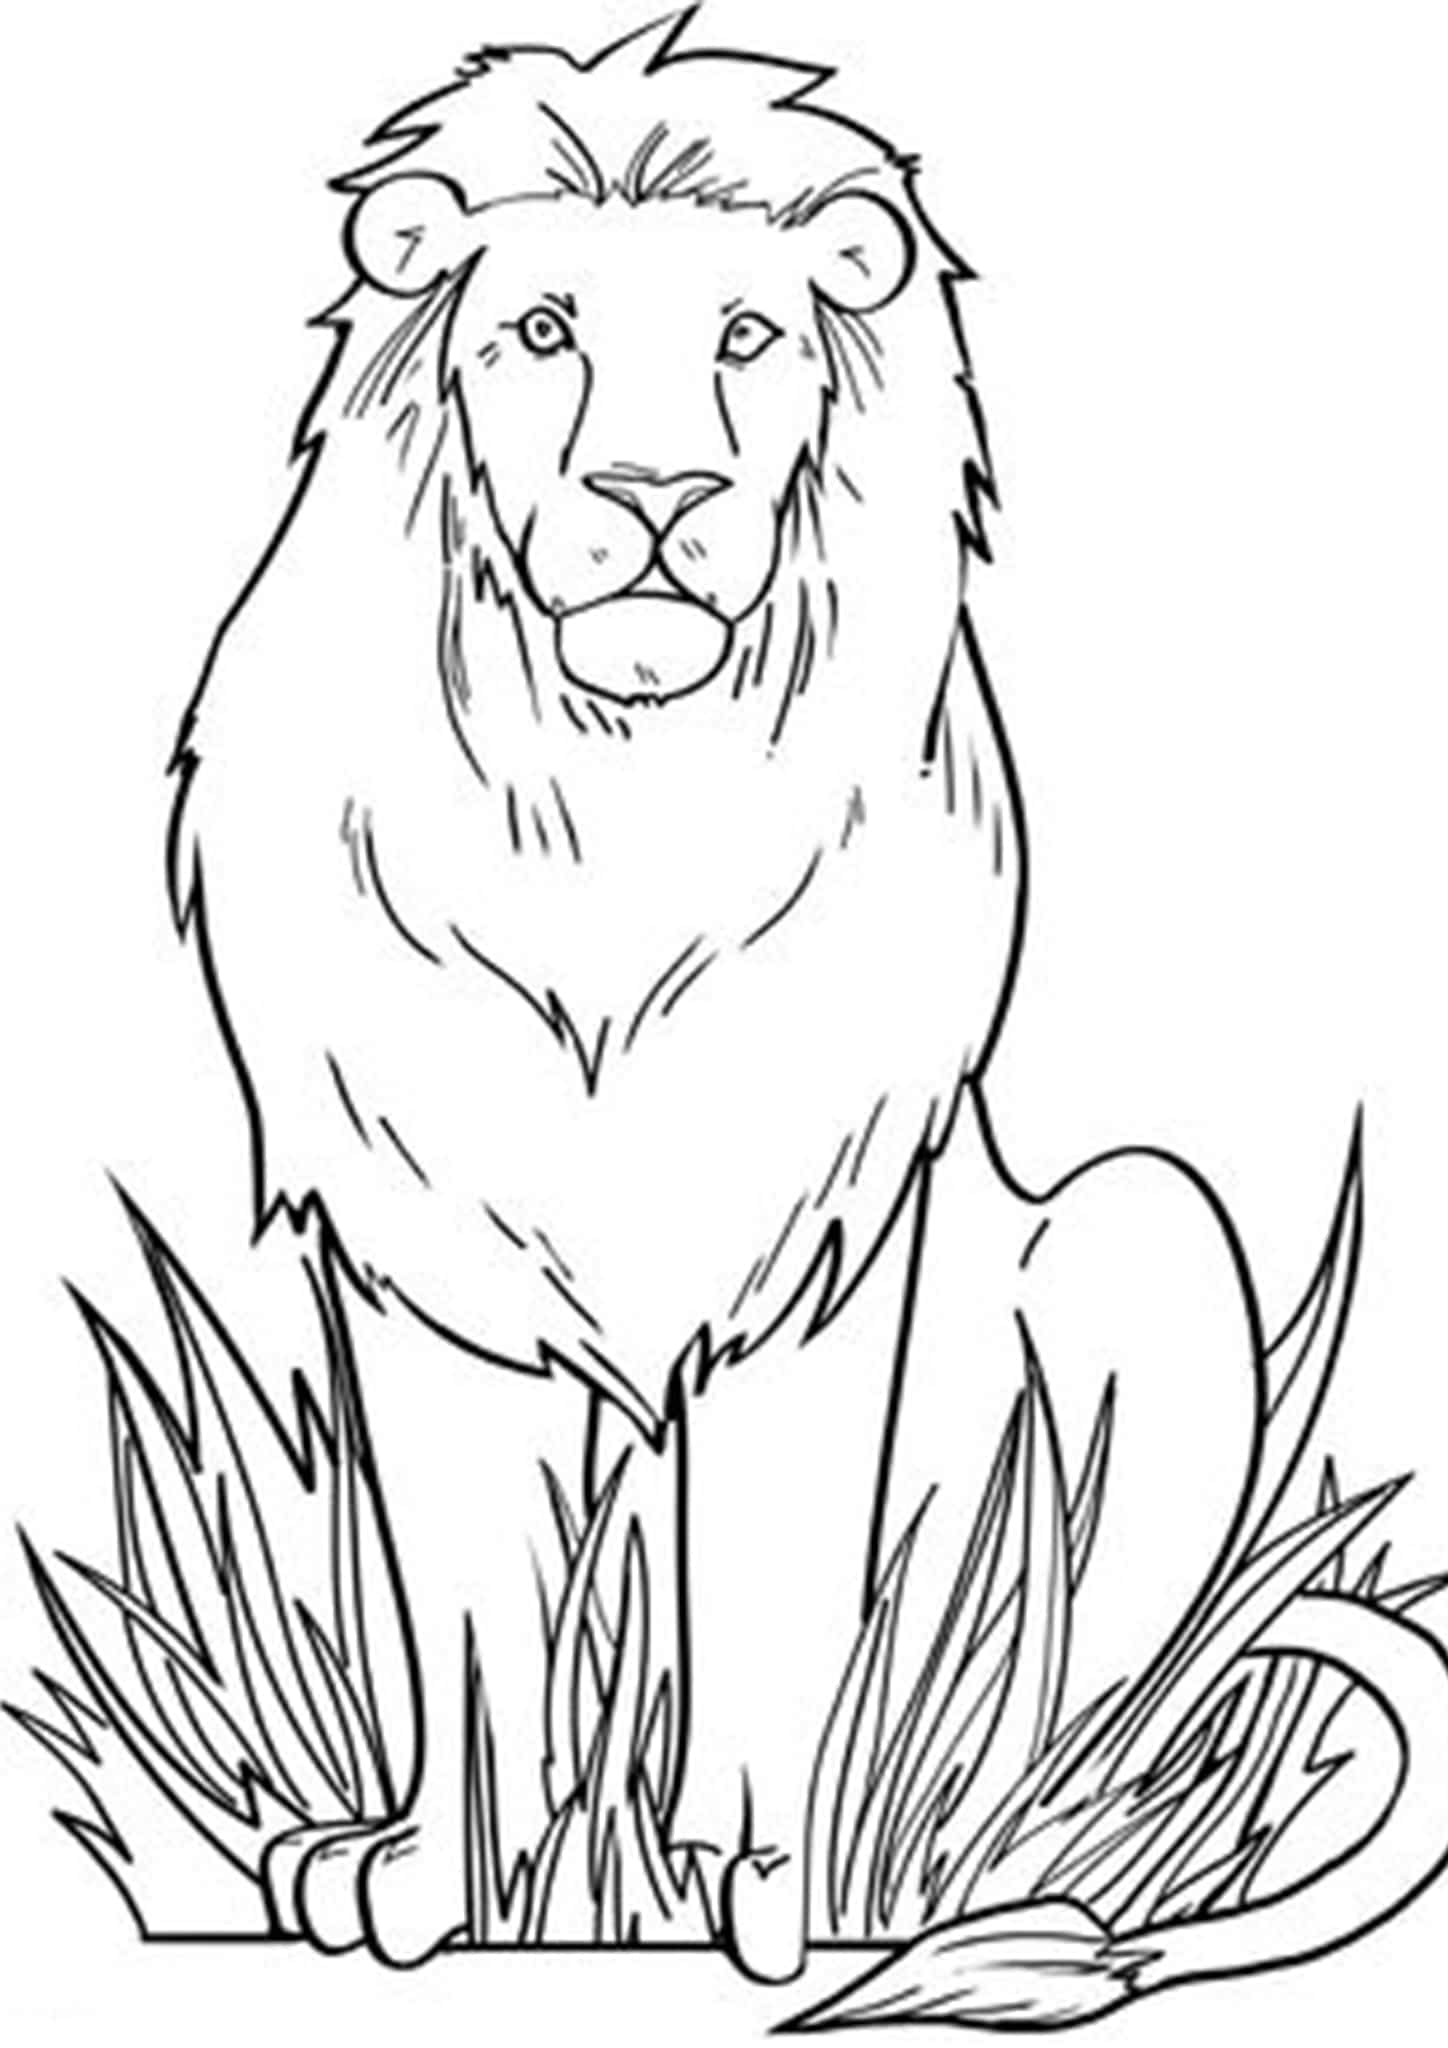 coloring pages for kids lion free printable lion coloring pages for kids pages lion coloring kids for